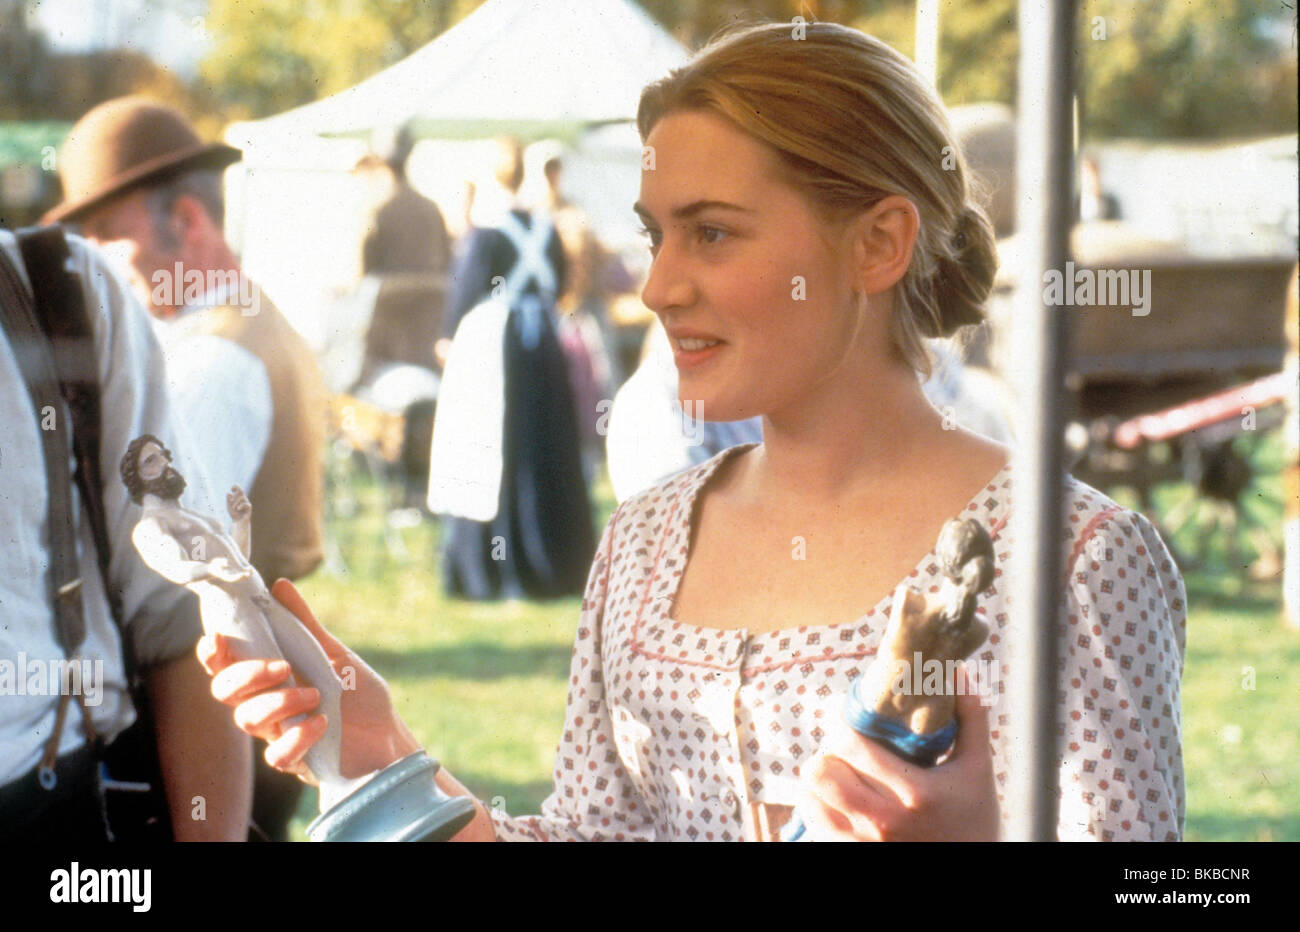 JUDE-1996 KATE WINSLET Stockbild